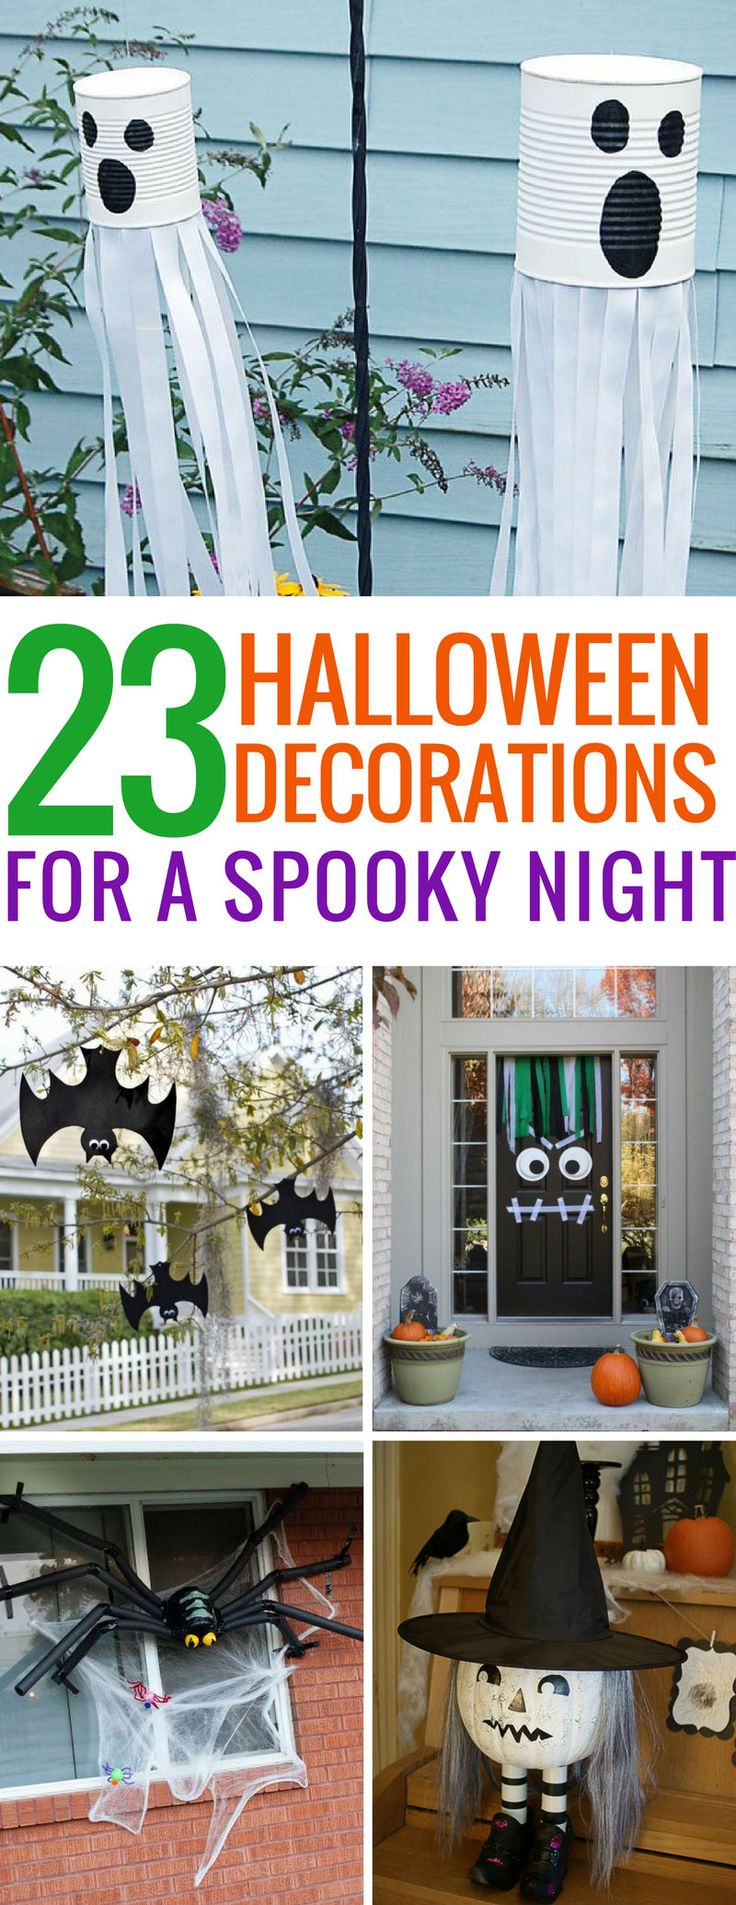 loving these homemade halloween decorations the kids will have a blast decorating our home for - At Home Halloween Decorations